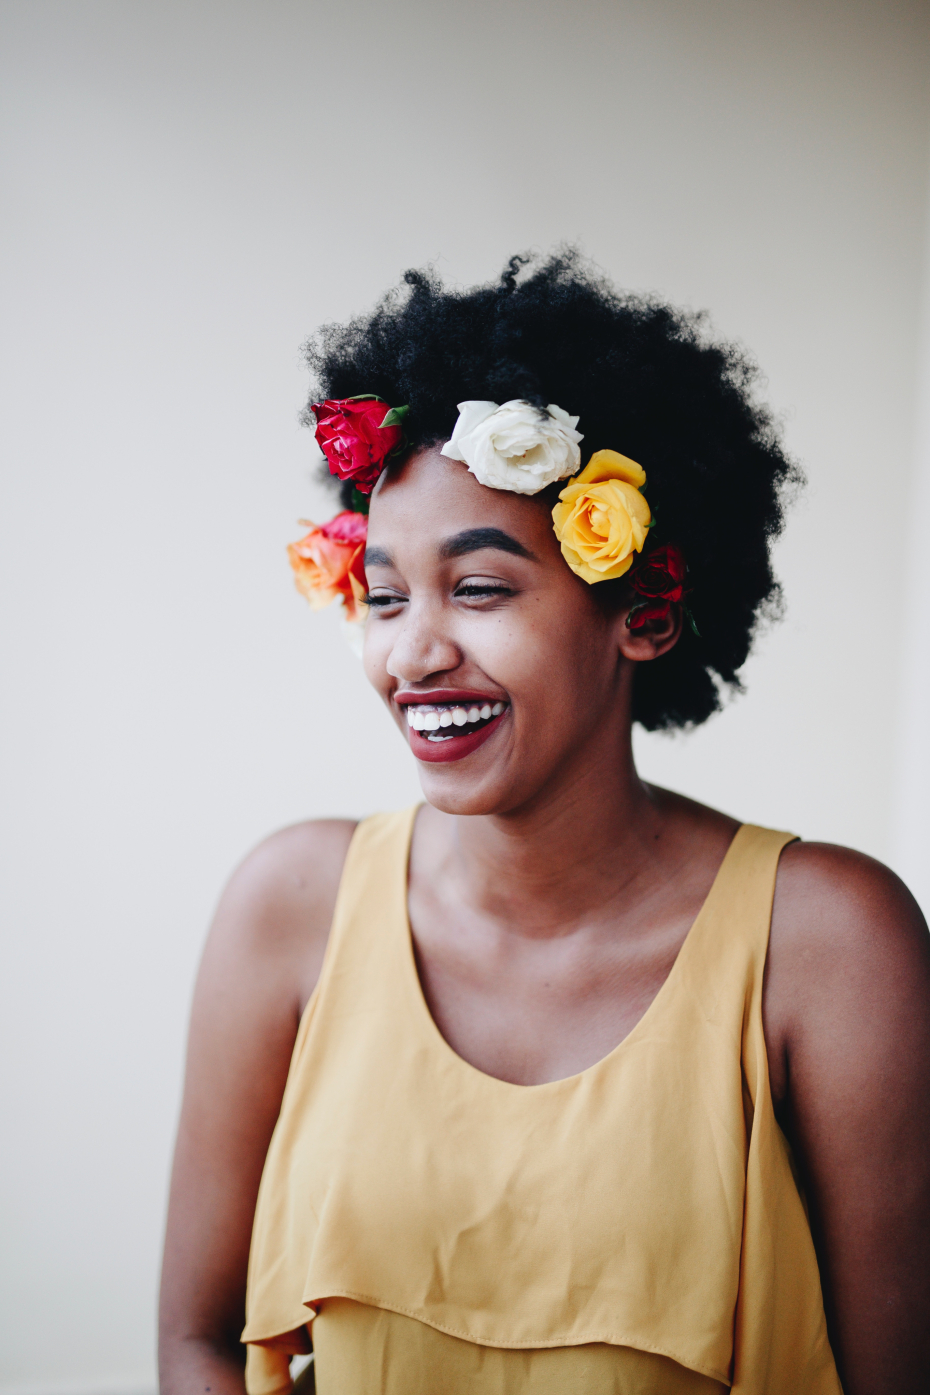 Review of happy not perfect wellness app girl with flower crown smiling izmirmasajfo